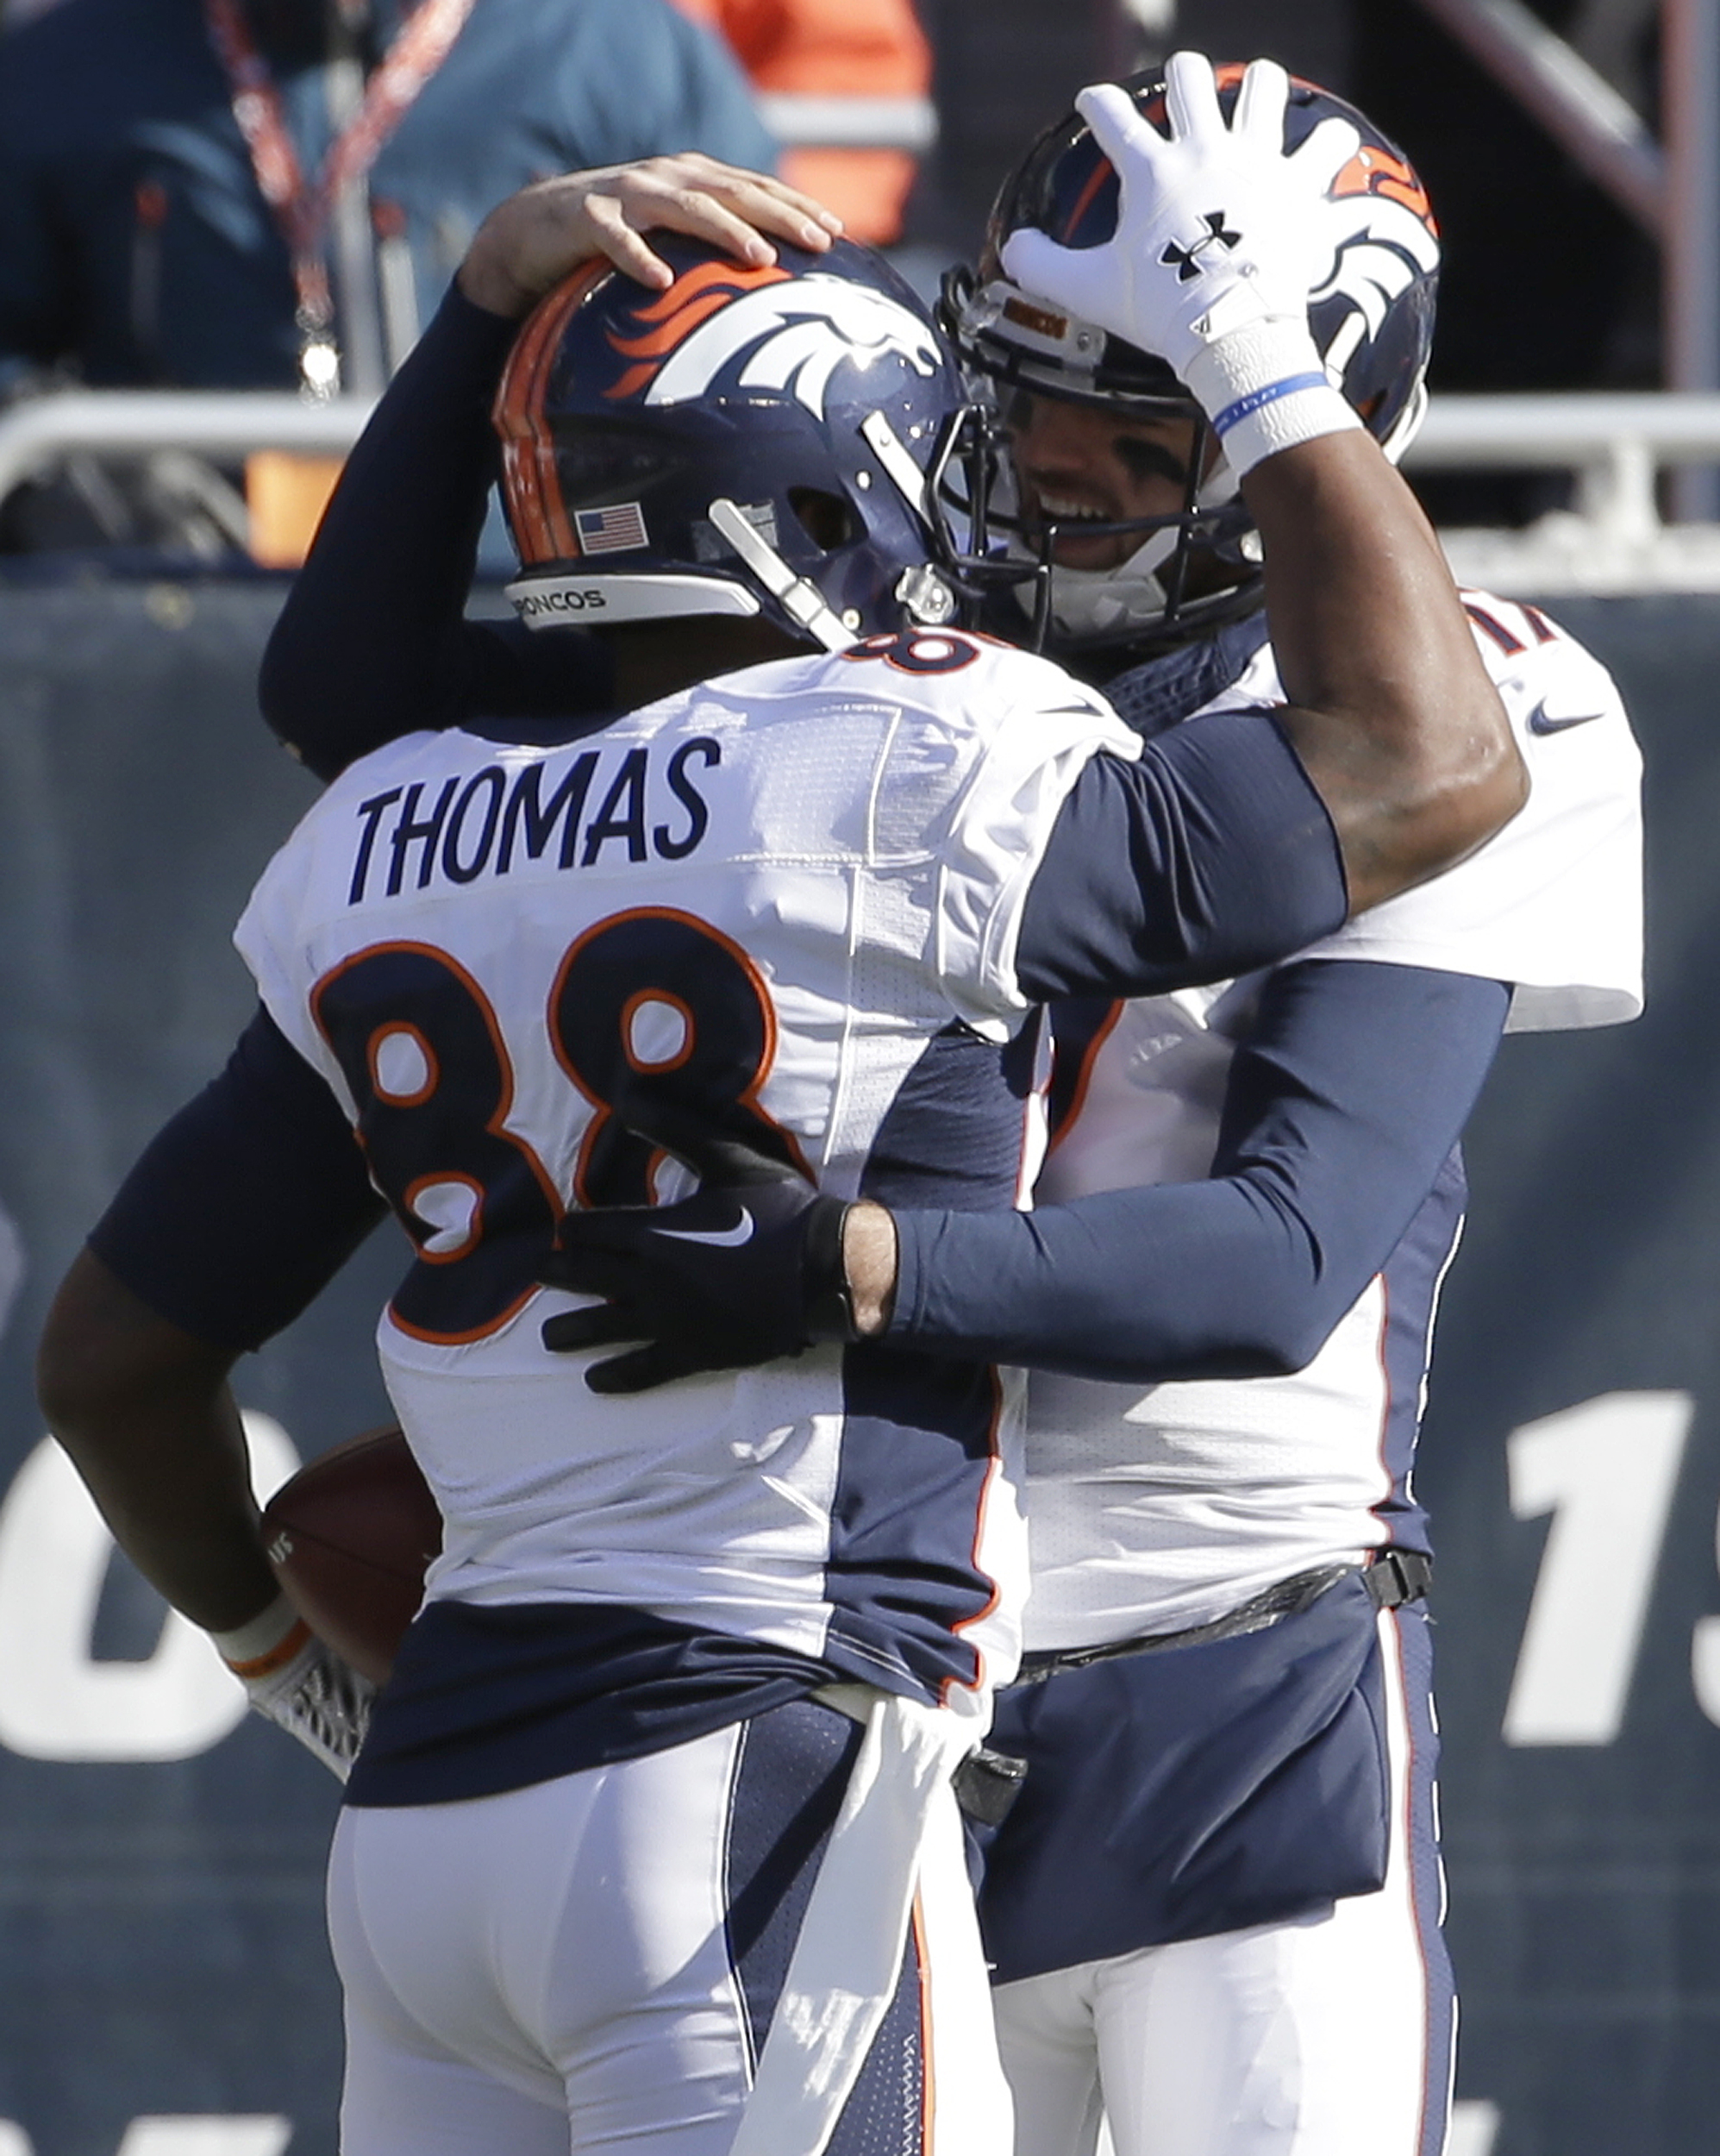 Denver Broncos wide receiver Demaryius Thomas (88) celebrates a touchdown with Denver Broncos quarterback Brock Osweiler (17) during the first half of an NFL football game against the Chicago Bears, Sunday, Nov. 22, 2015, in Chicago. (AP Photo/Nam Y. Huh)